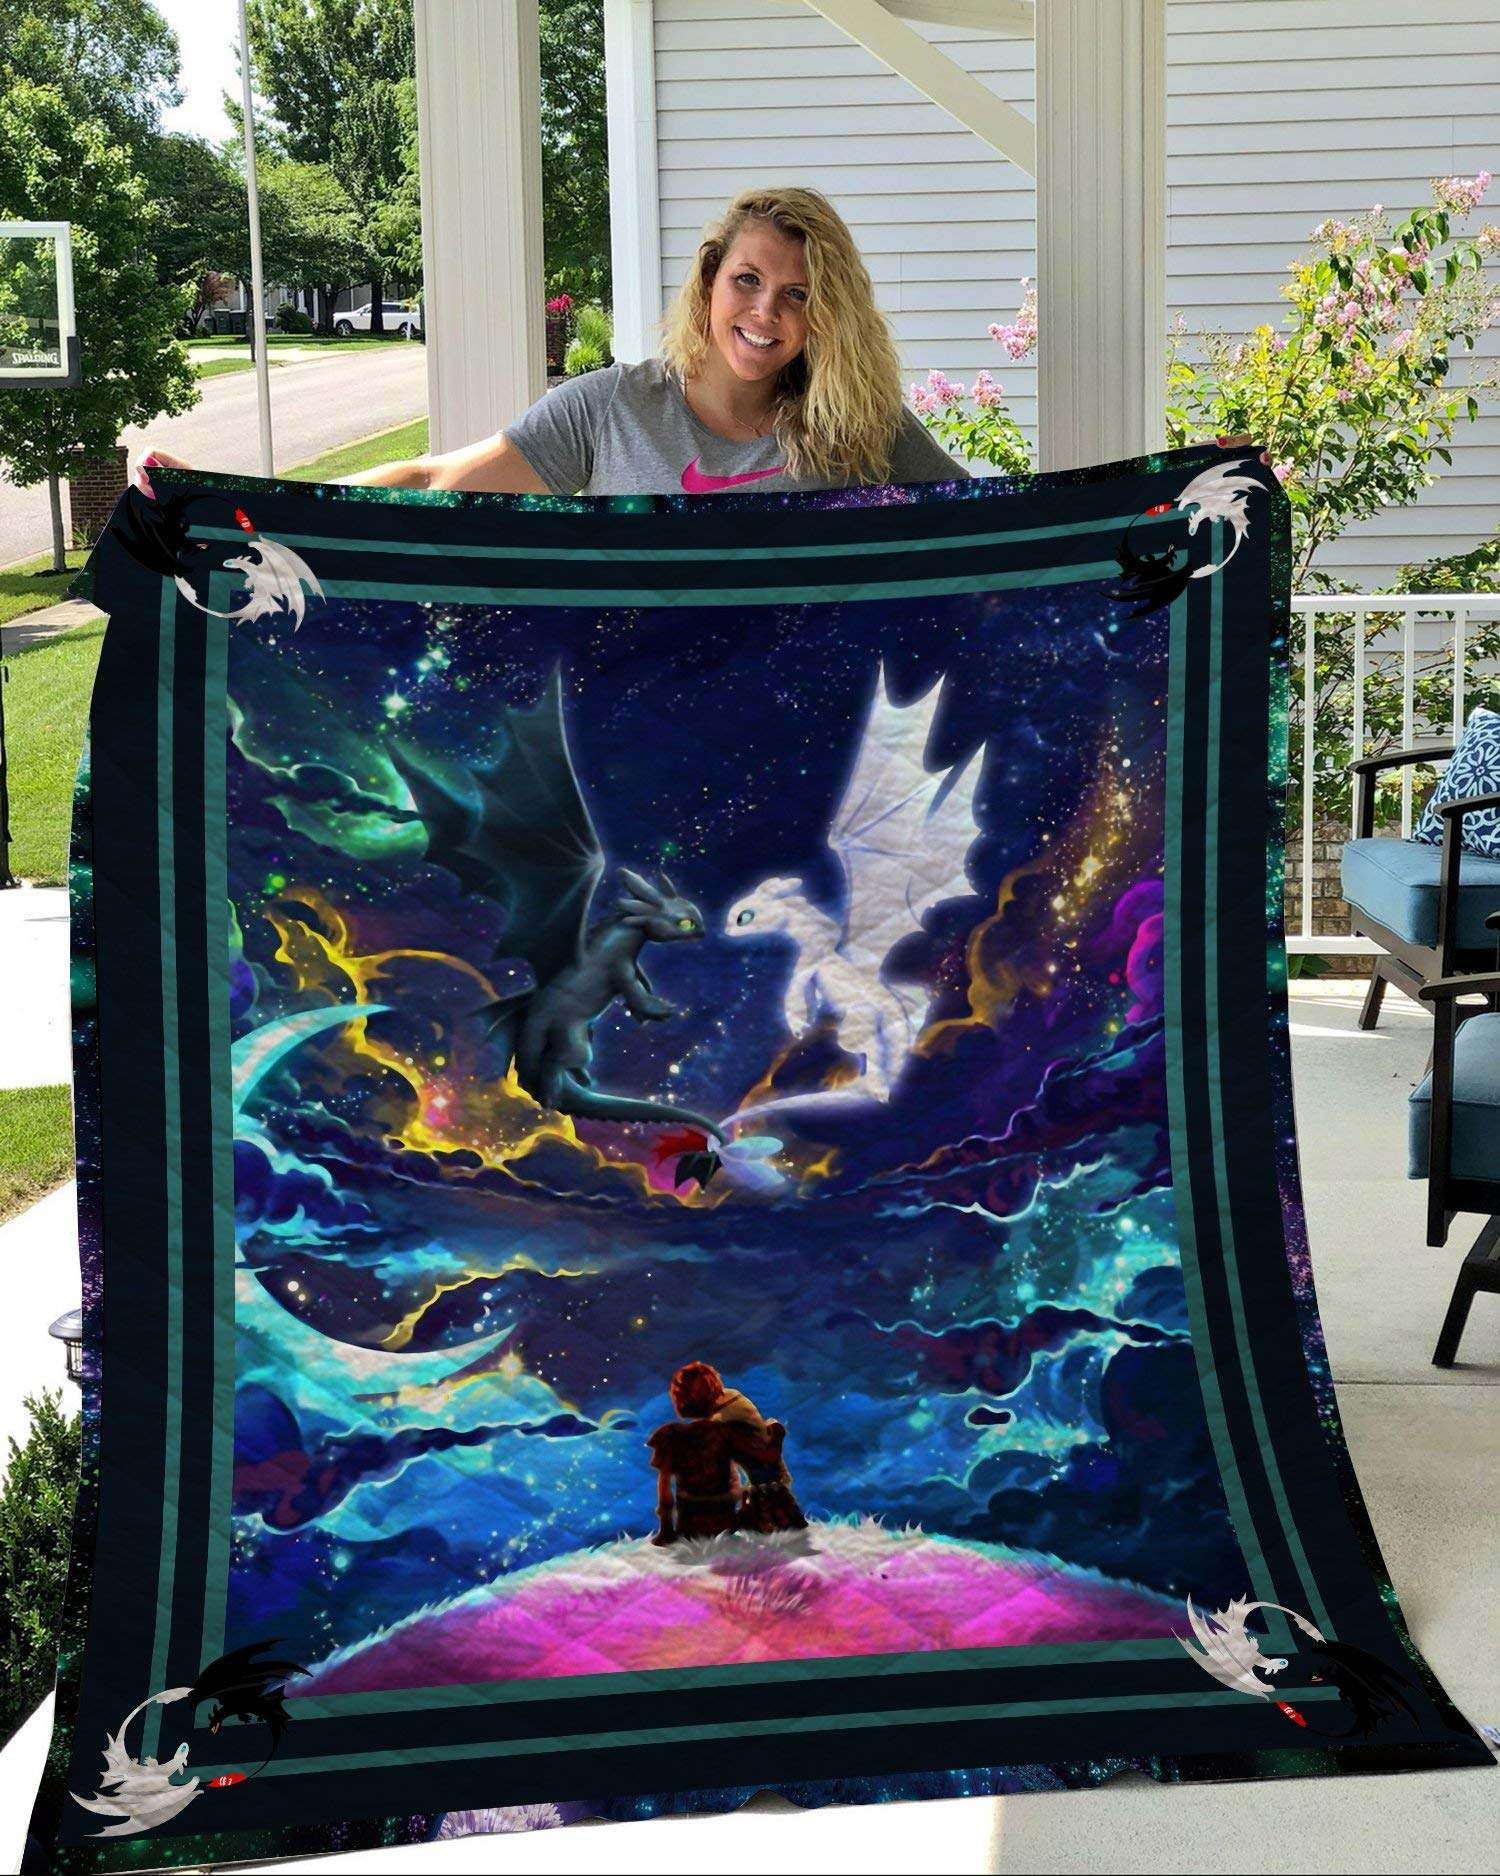 Kids How to Train Your Dragon Theme Quilt Blanket for Kids Bedding Throw Soft Warm Thin Blanket with Cotton Quilt (style4,150200cm)